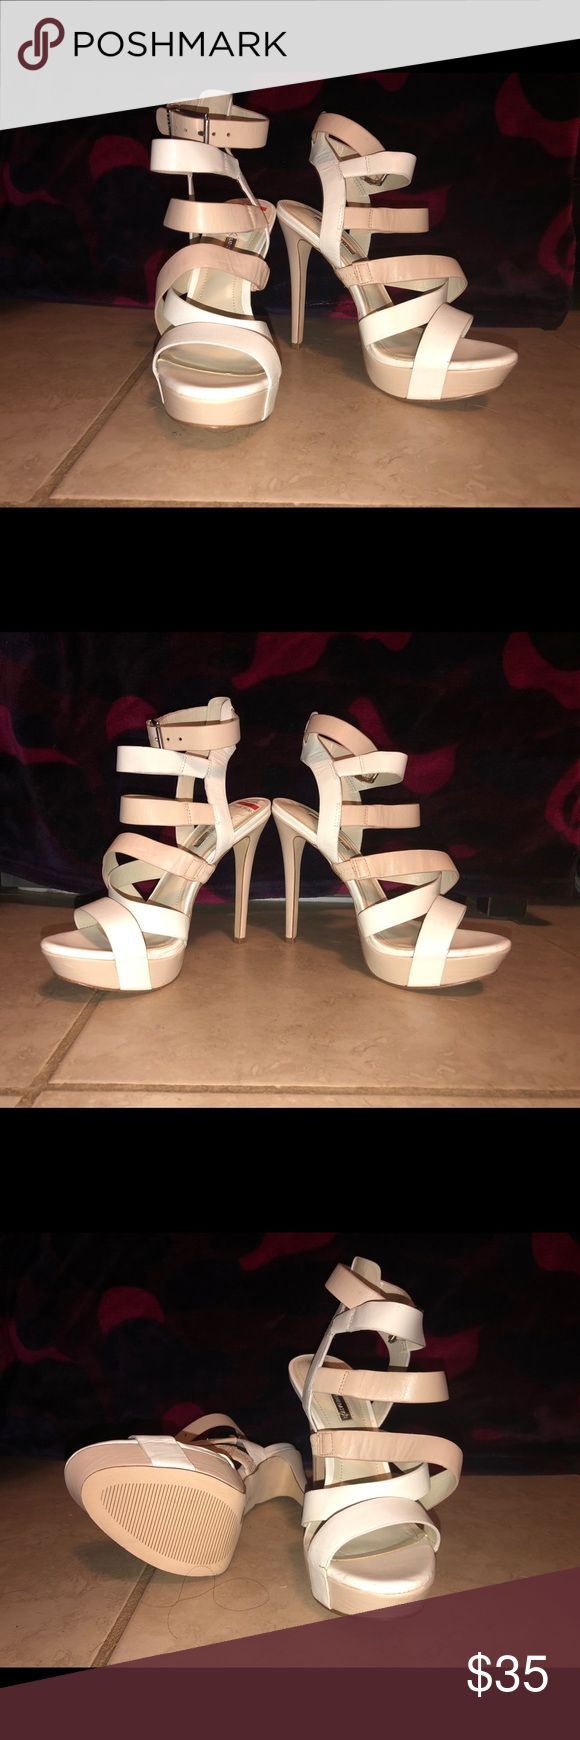 Platform white and cream heeled strap sandals BCBG - Brand new and never worn! Platform sandal with white and cream straps. Leather upper and man made some/lining. BCBGeneration Shoes Sandals